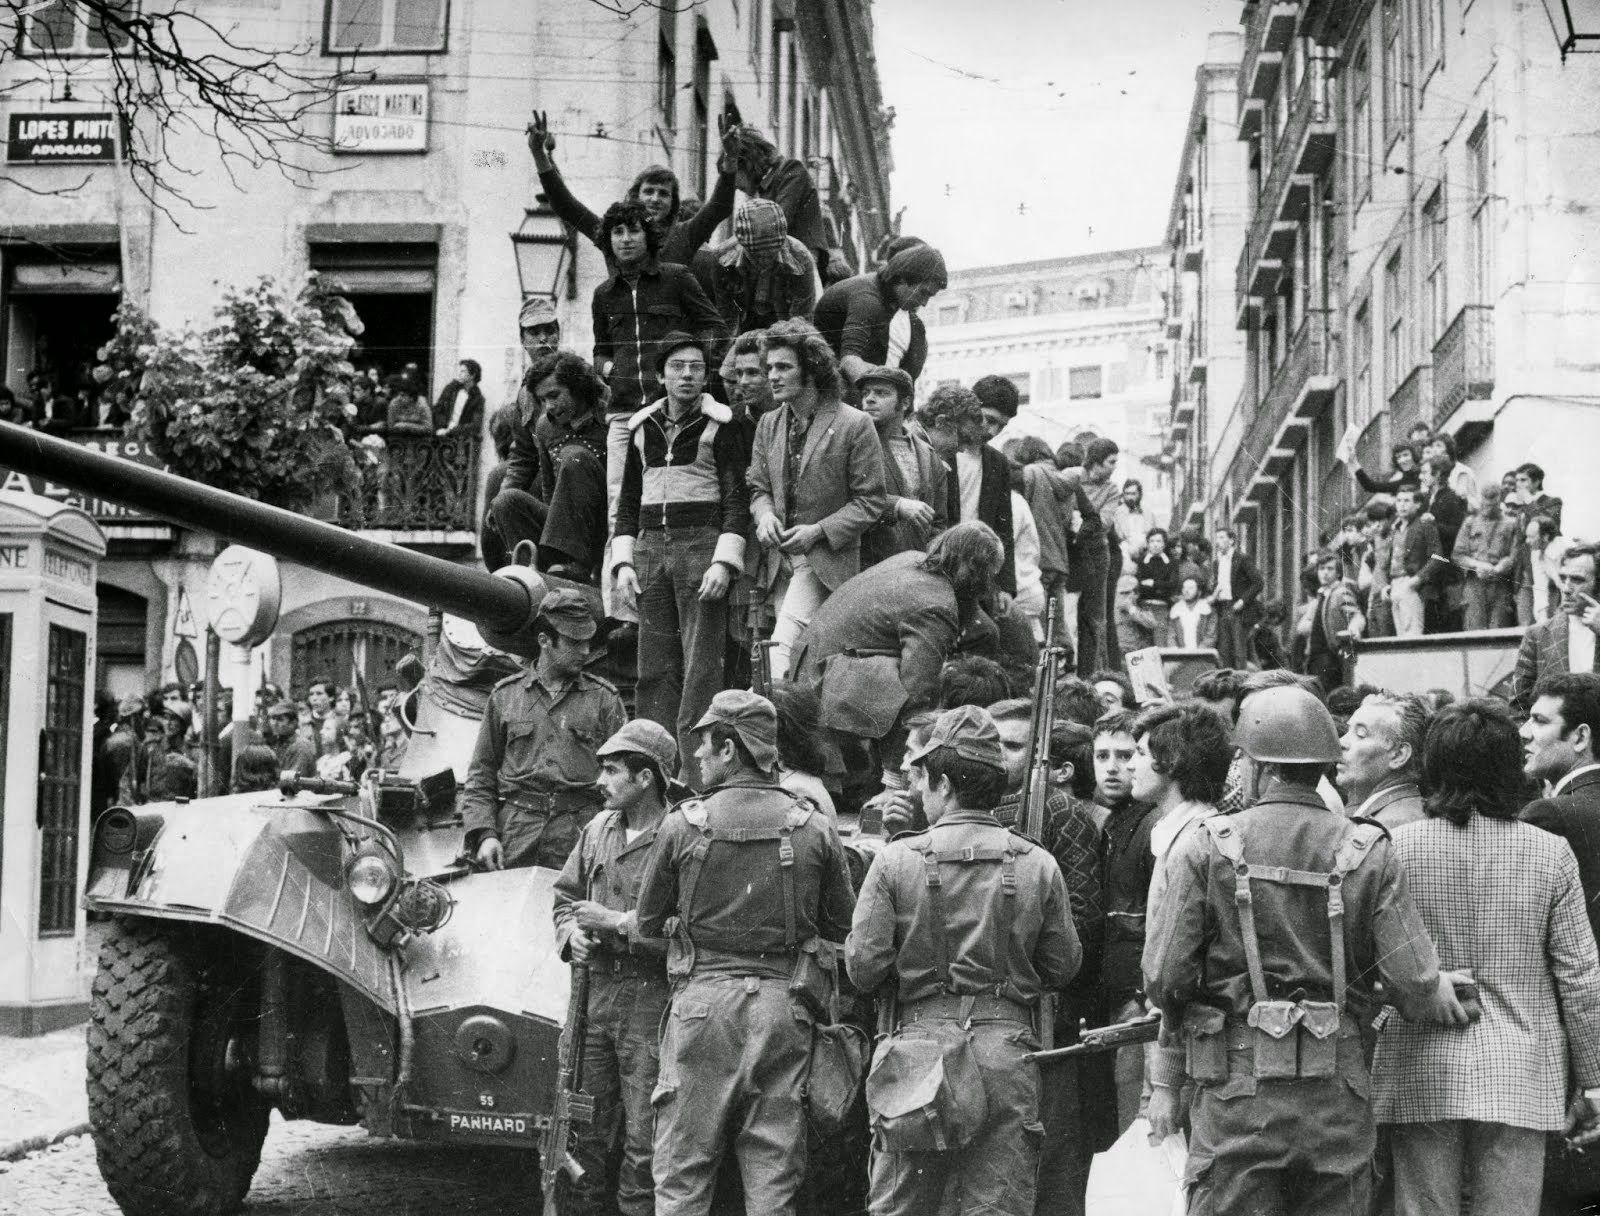 """1974 Carnation Revolution - Citizens of Lisbon join in with the Portuguese Army soldiers of the Armed Forces Movement (Movimento das Forças Armadas) as they overthrow the Fascist """"Estado Novo"""" regime."""